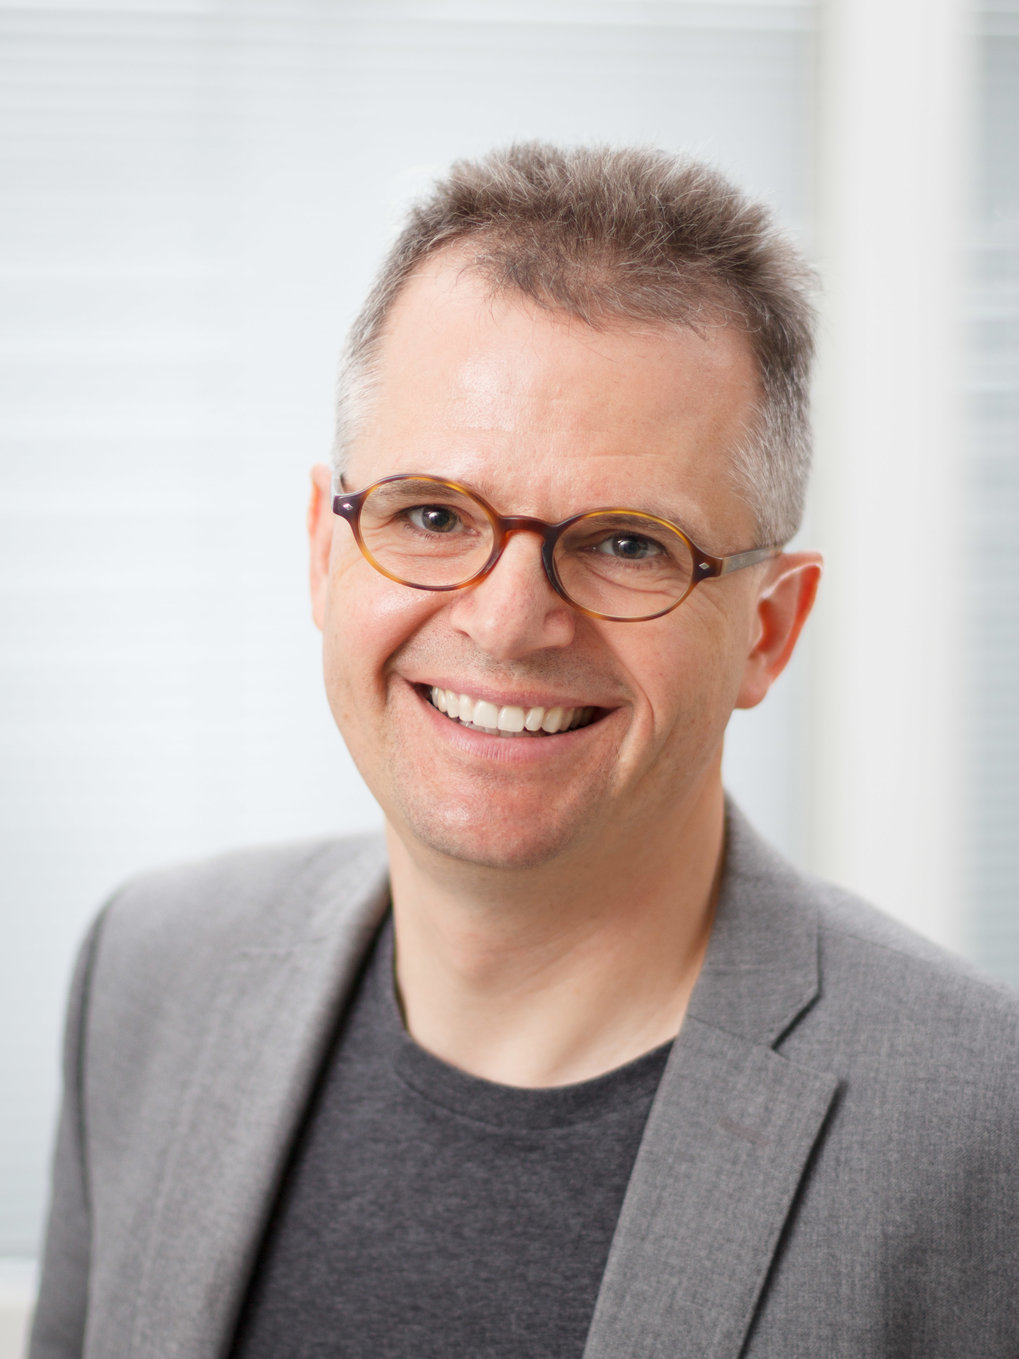 Prof. Dr. Harald Giessen<br />Director of the 4<sup>th</sup> Physics Institute, University of Stuttgart <br /><br />Ultra-fast Nano-Optics, Metamaterials